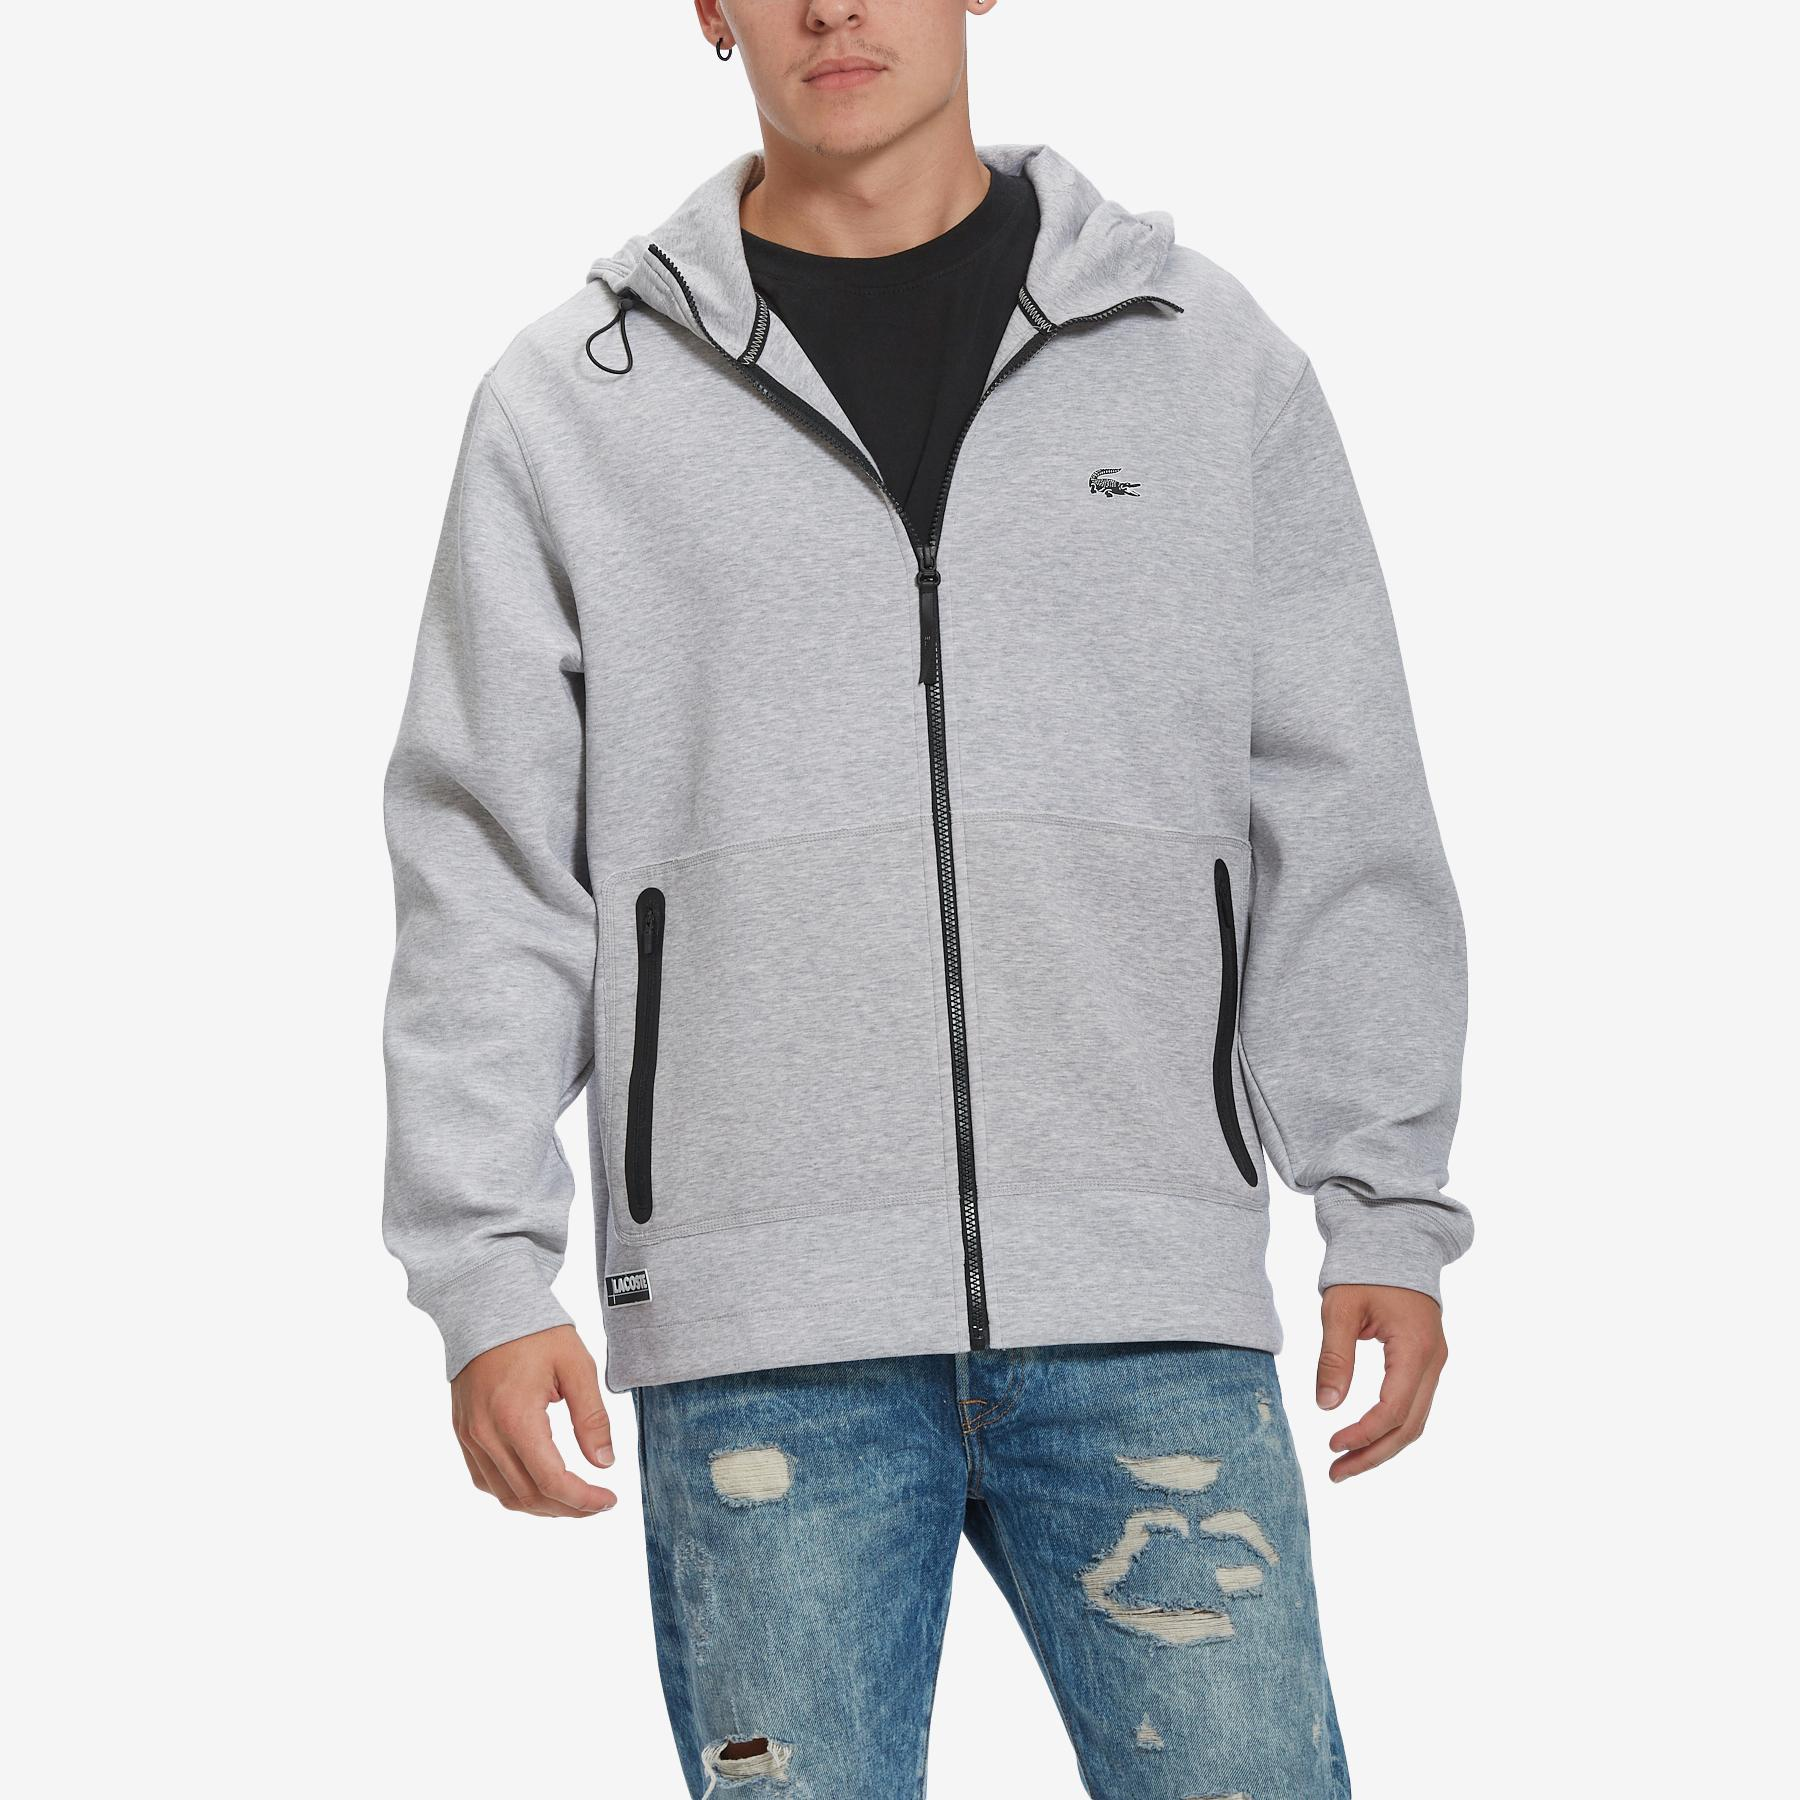 Men's Branded Hooded Zippered Jacket With Badge